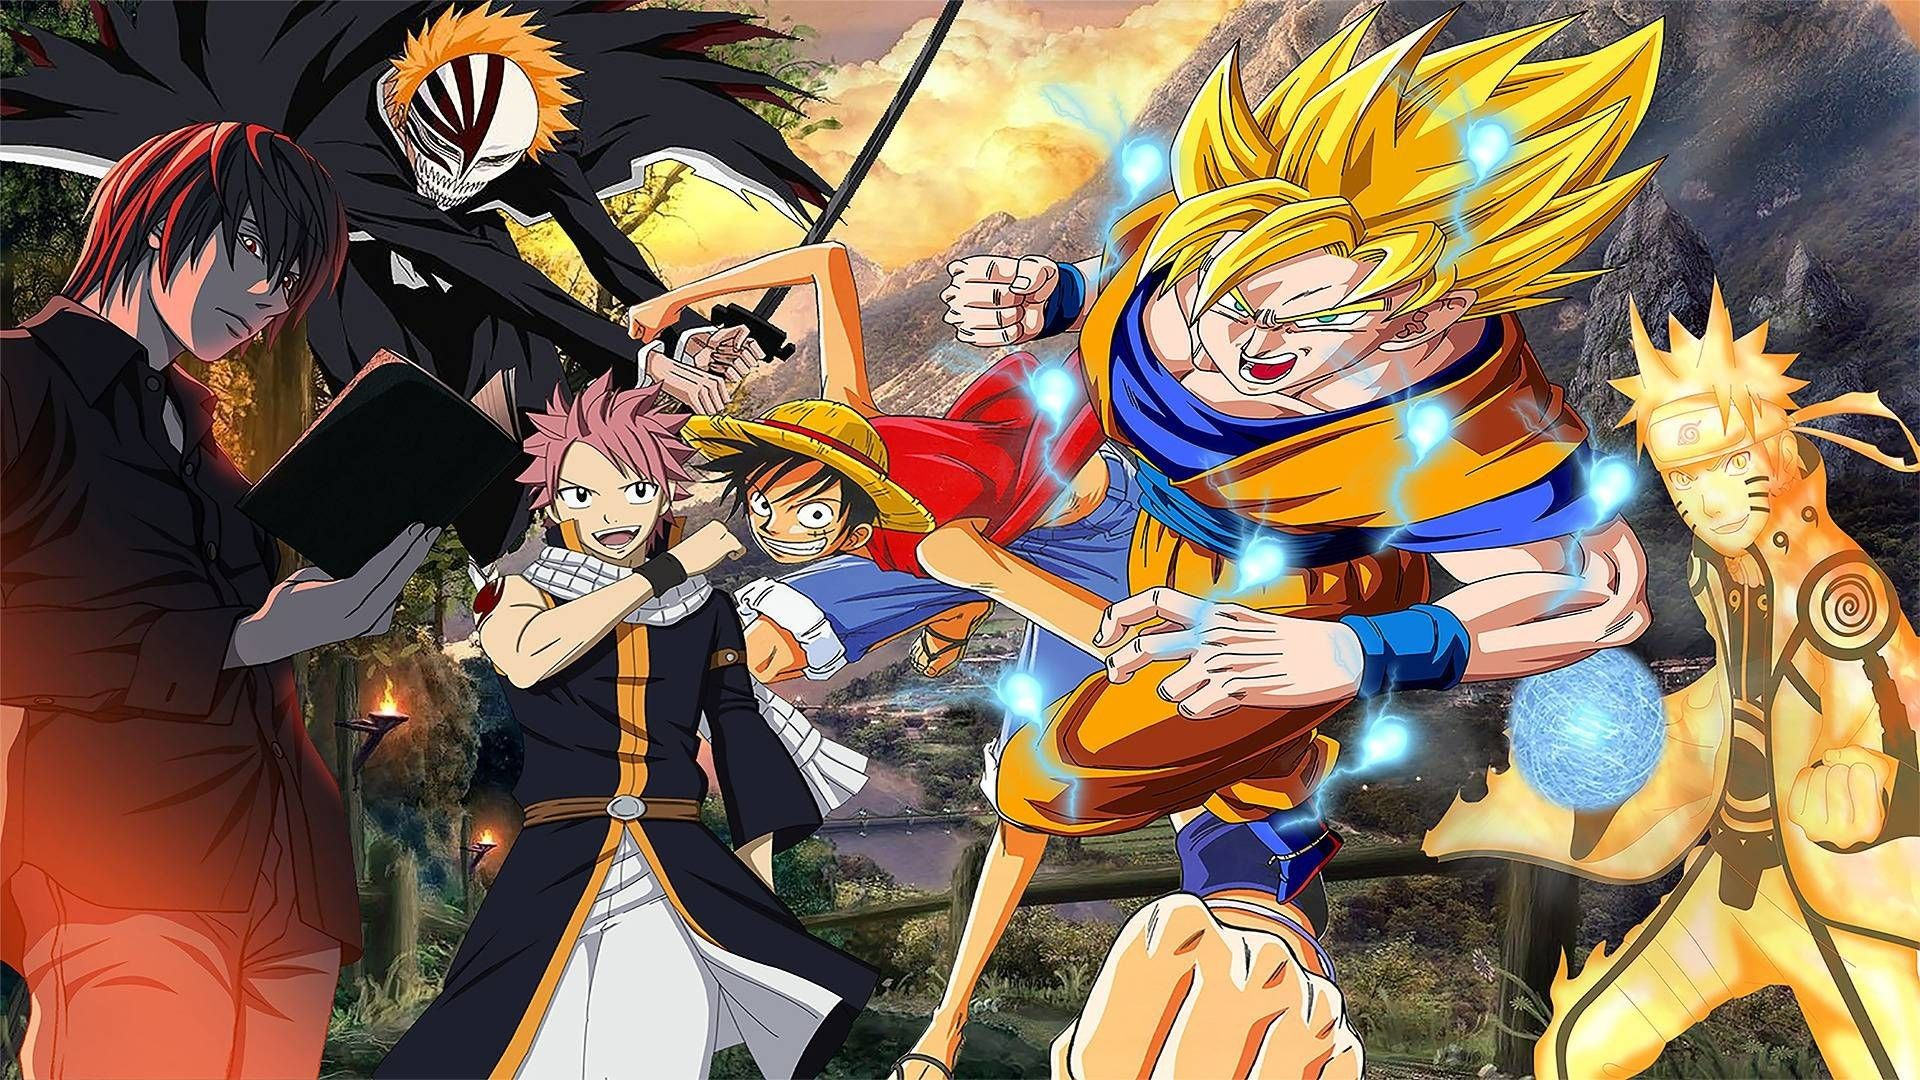 Tons of awesome one piece hd 4k iphone wallpapers to download for free. Anime 4k One Piece Naruto Wallpapers - Wallpaper Cave